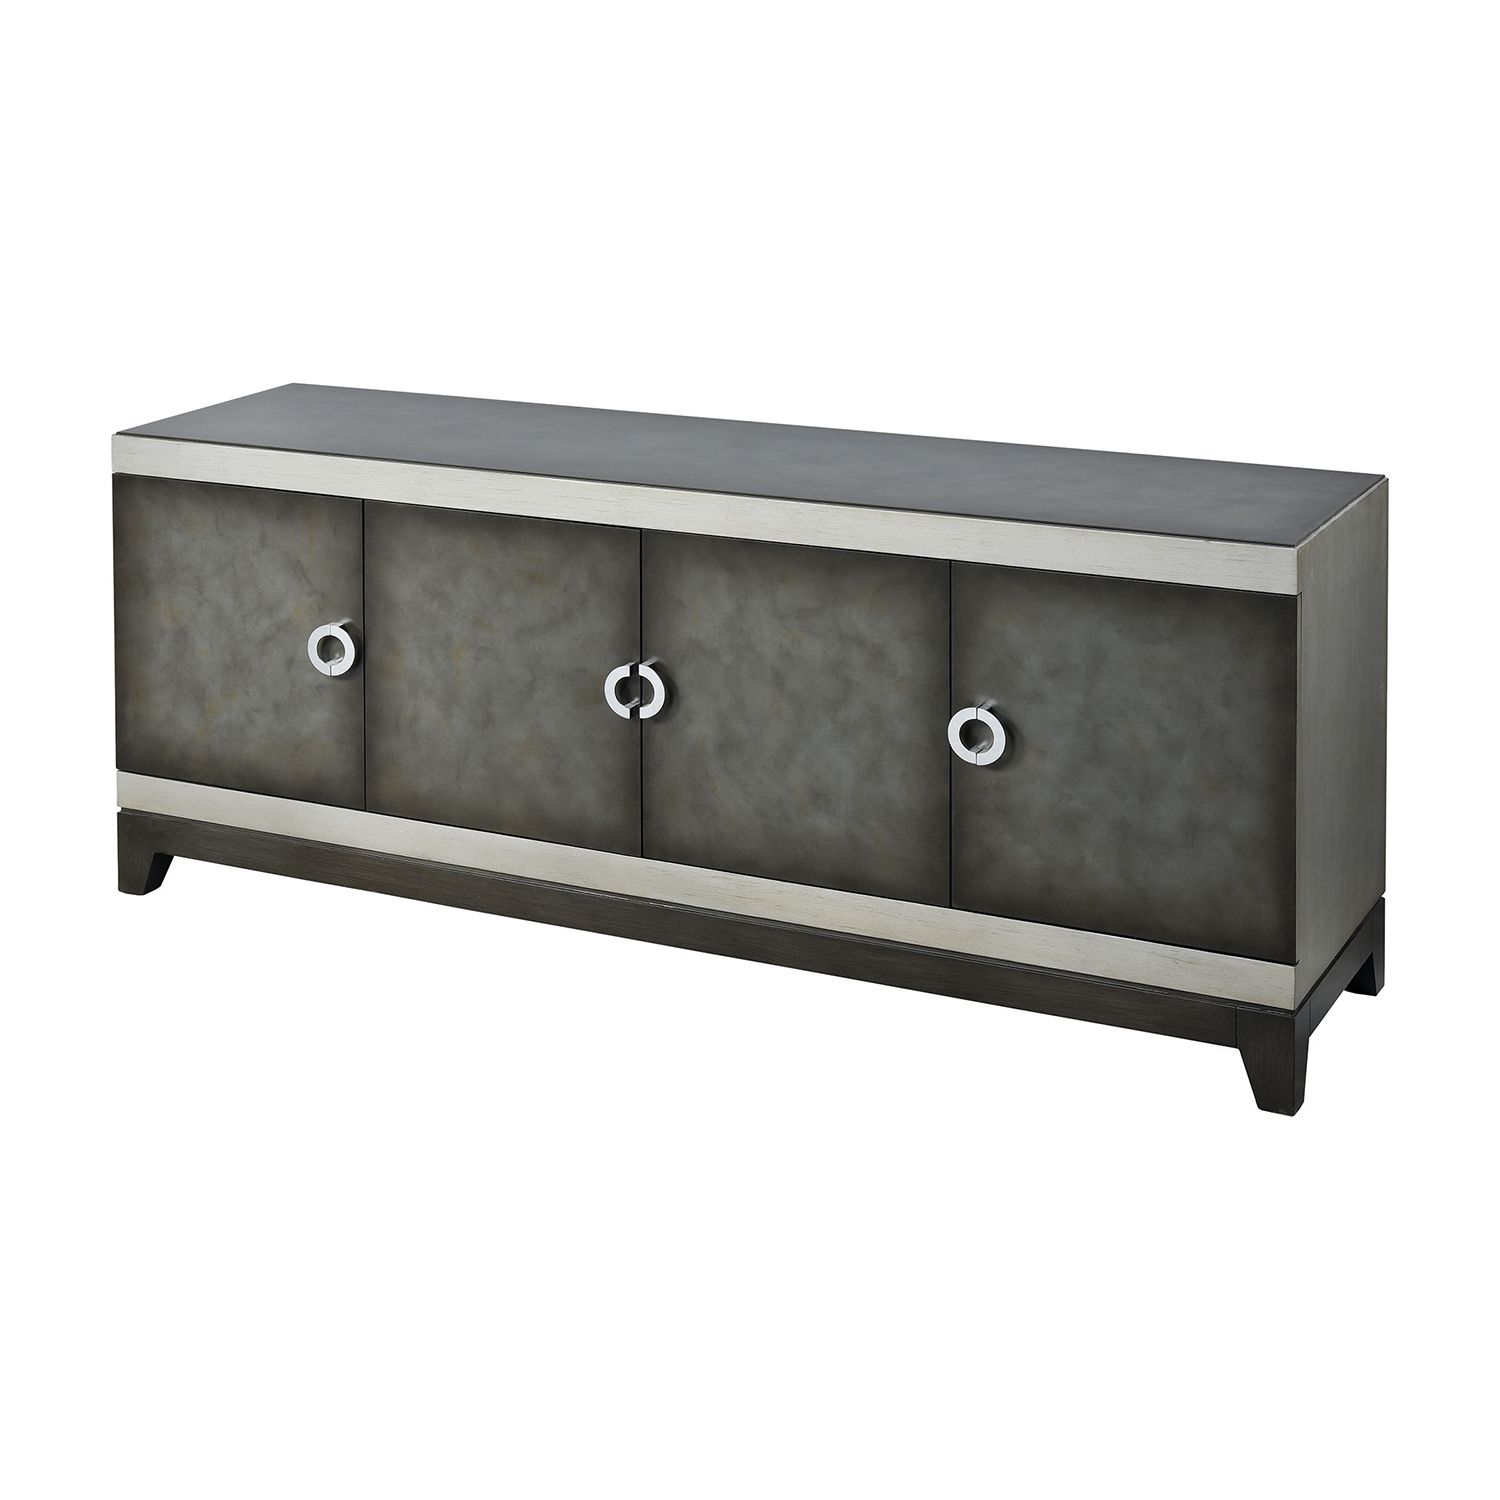 Stein World Aleksey Antique Pewter And Silver Media Console 17047 with regard to Jaxon 76 Inch Plasma Console Tables (Image 28 of 30)